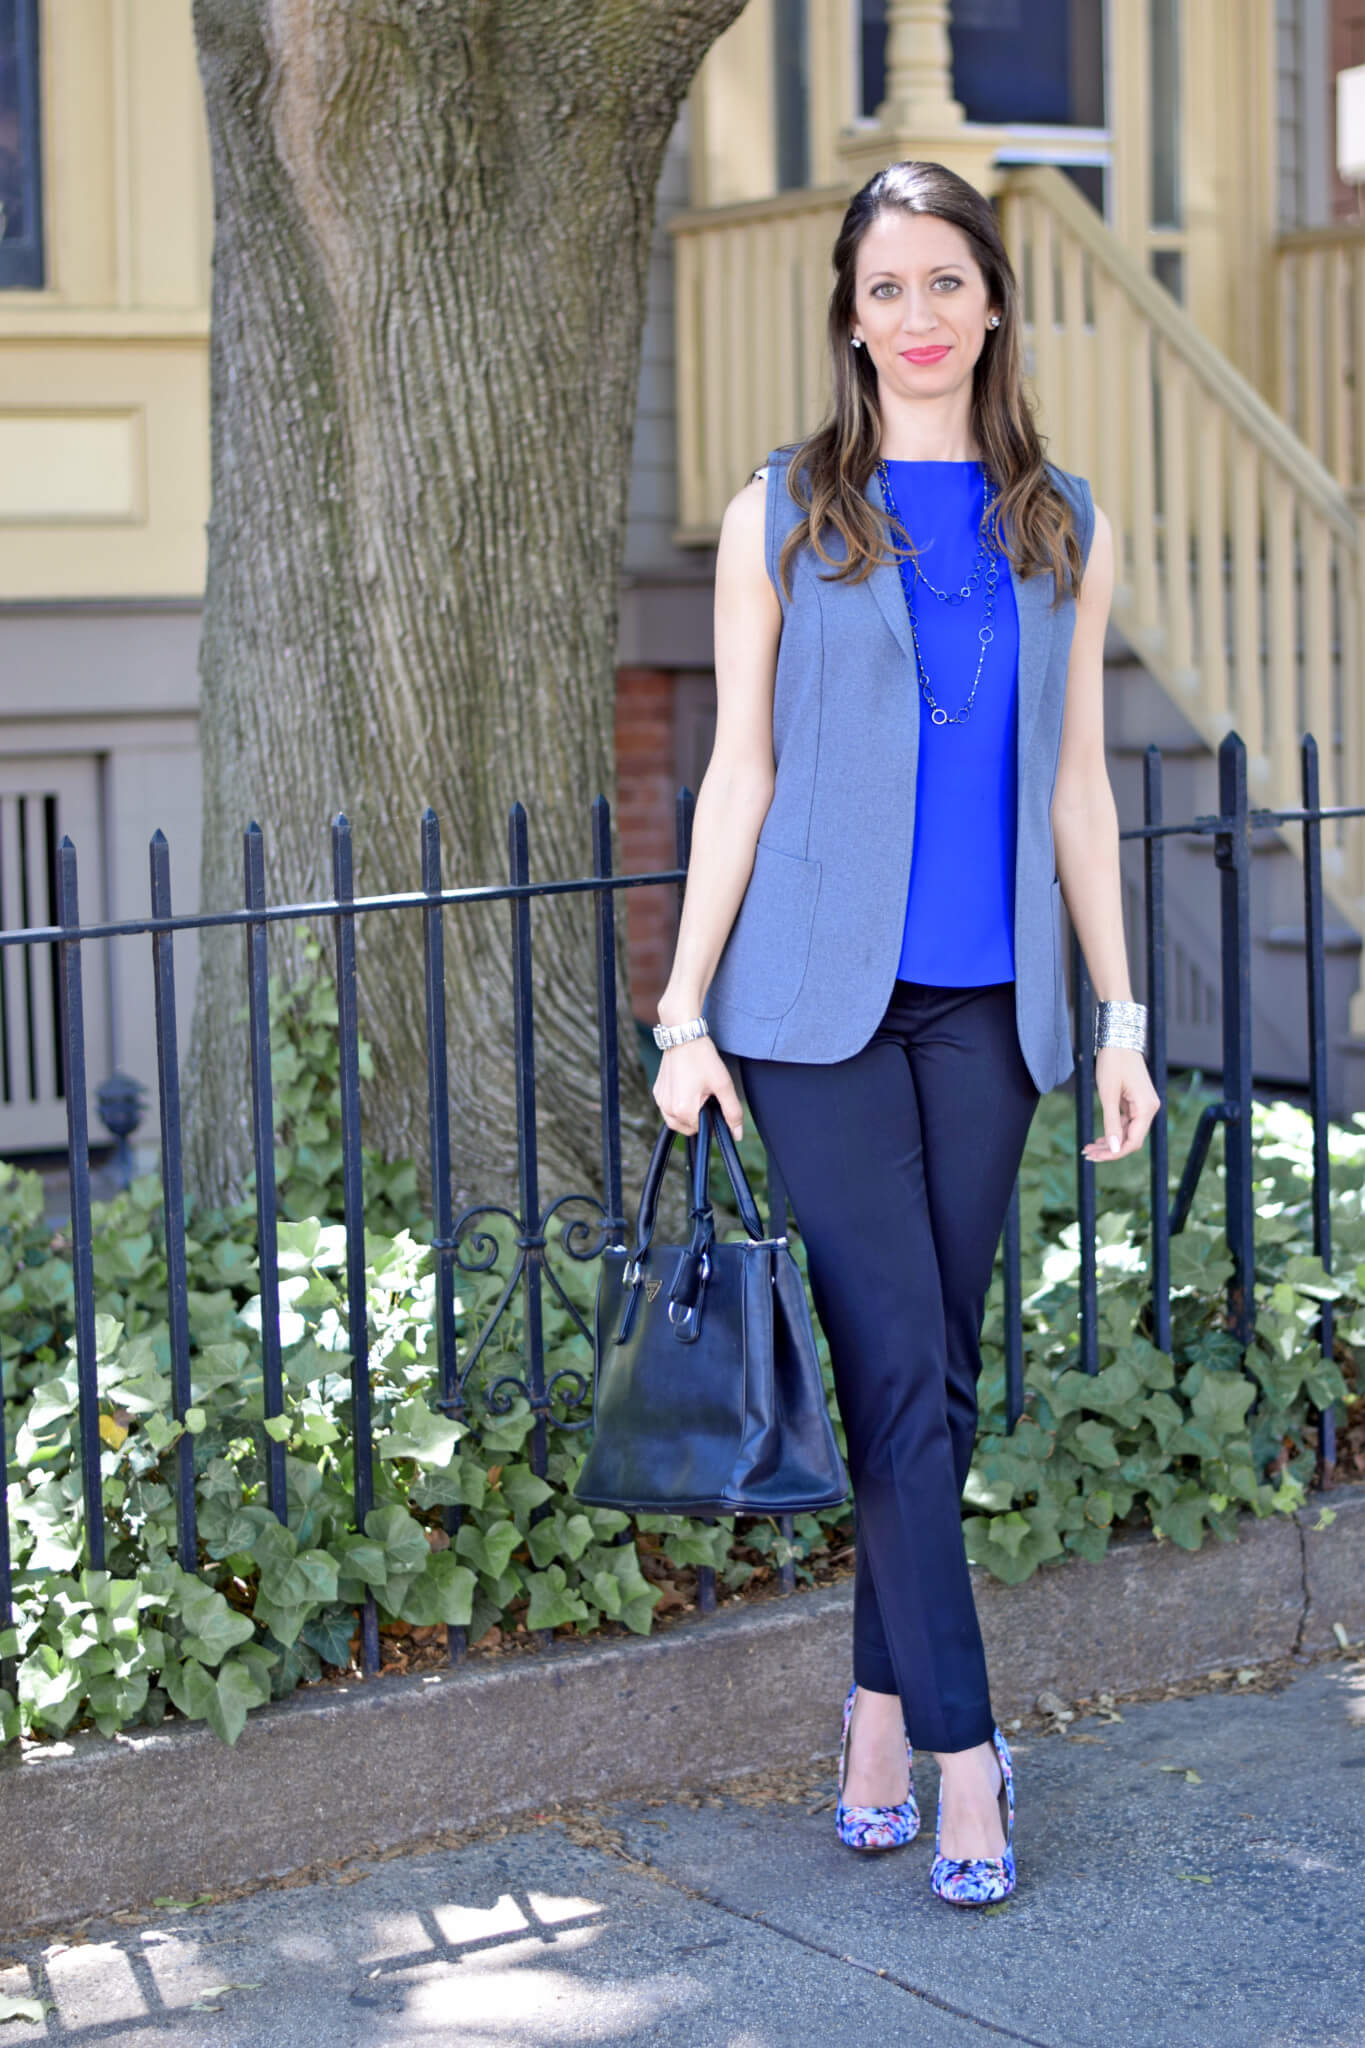 Dress for Success   What to Wear for a Creative Job Interview   Interview Outfit Ideas